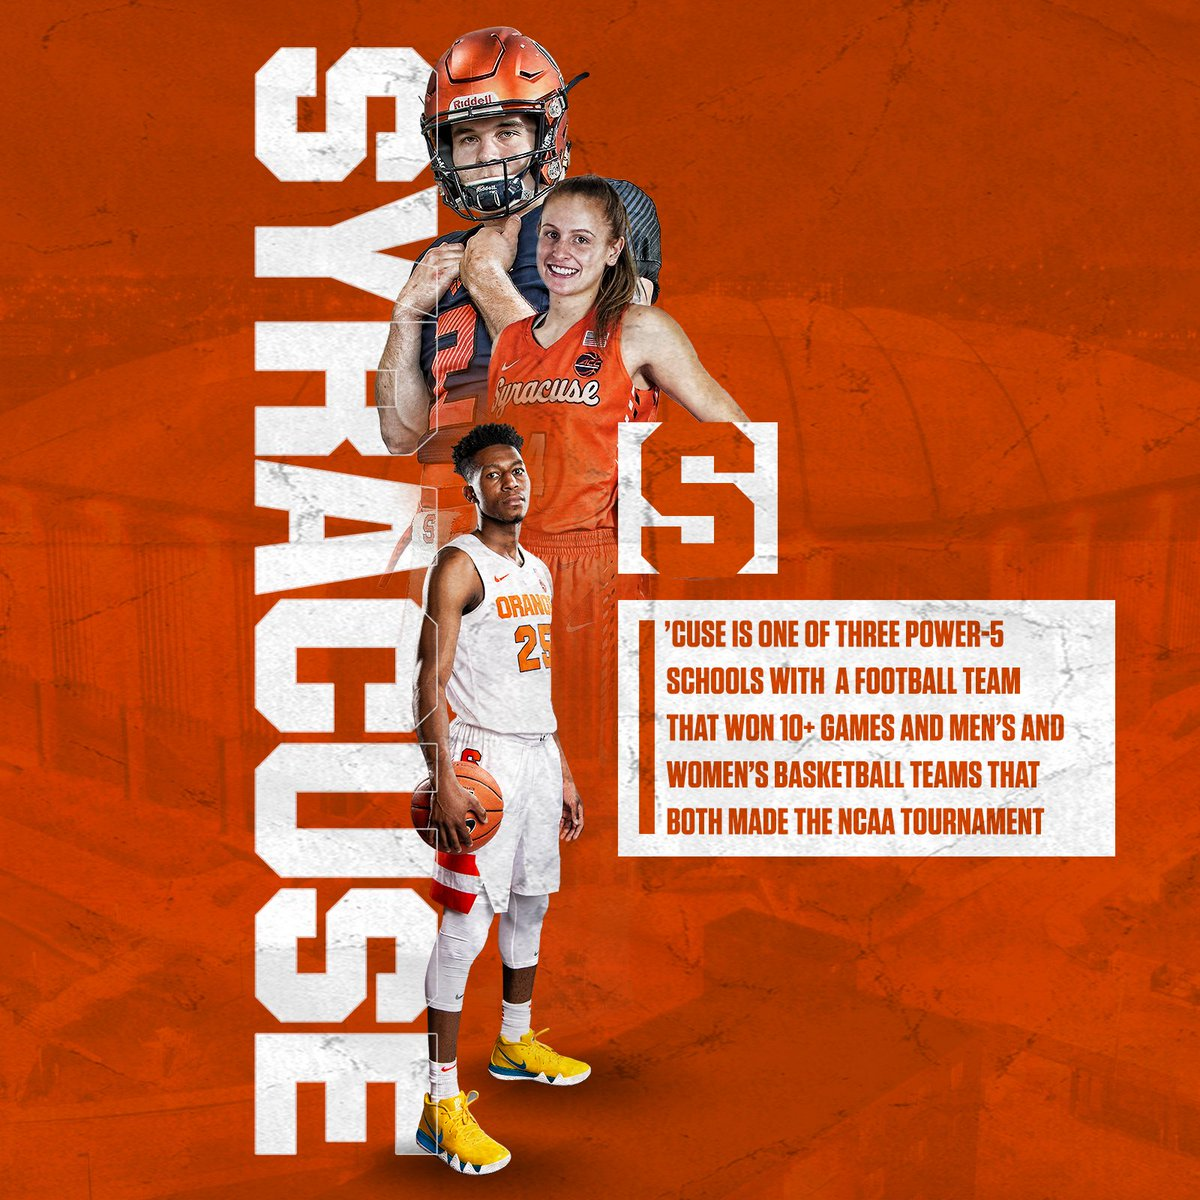 Orange Success 🍊💪  P5 schools with 10+ football wins & men's and women's basketball in NCAA Tournament: 🔸 Syracuse 🔸 Kentucky 🔸 Michigan